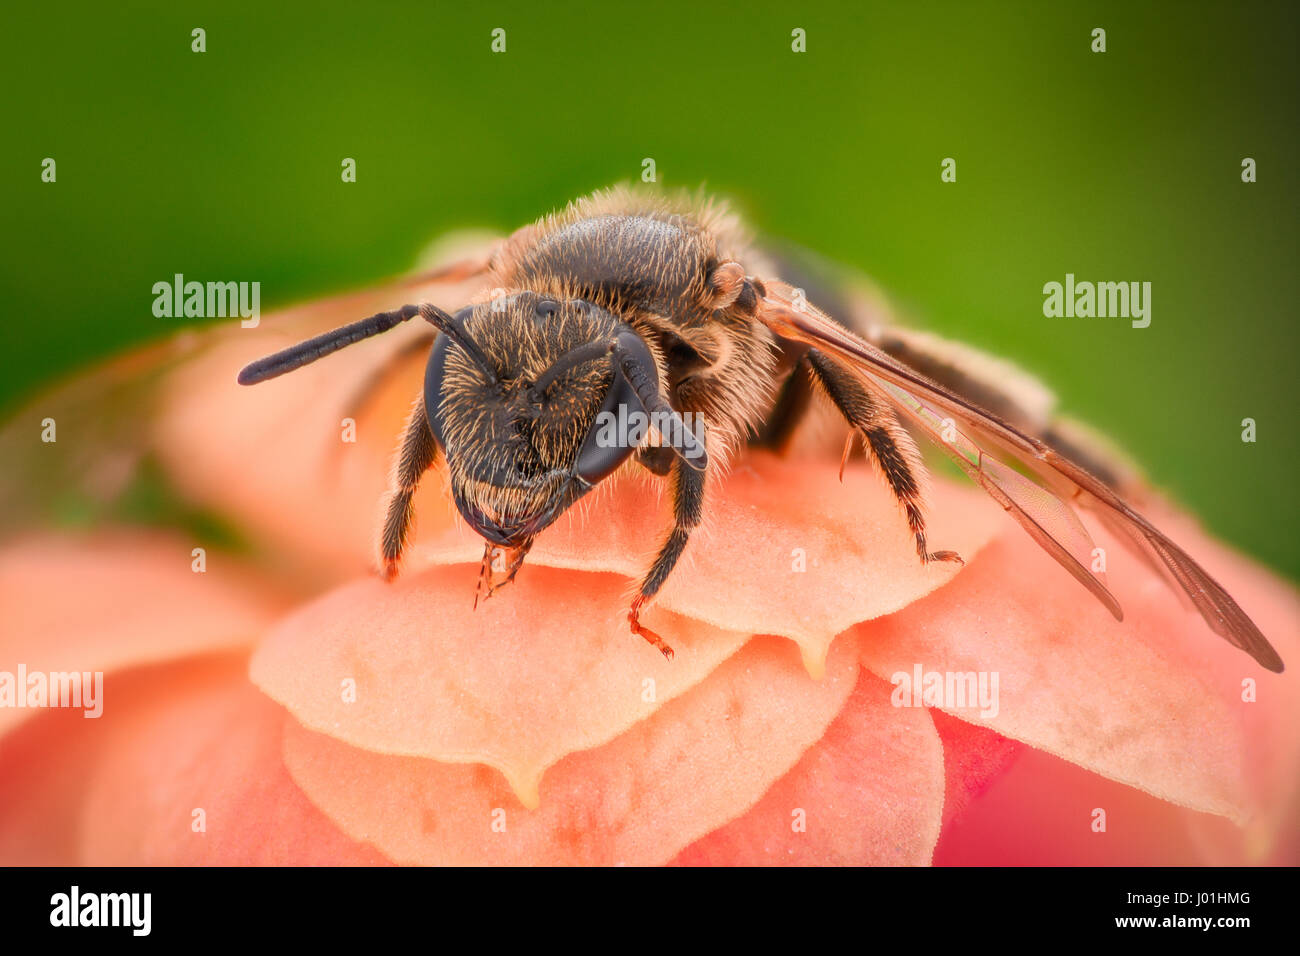 Extreme magnification - Bee pollinating flower - Stock Image